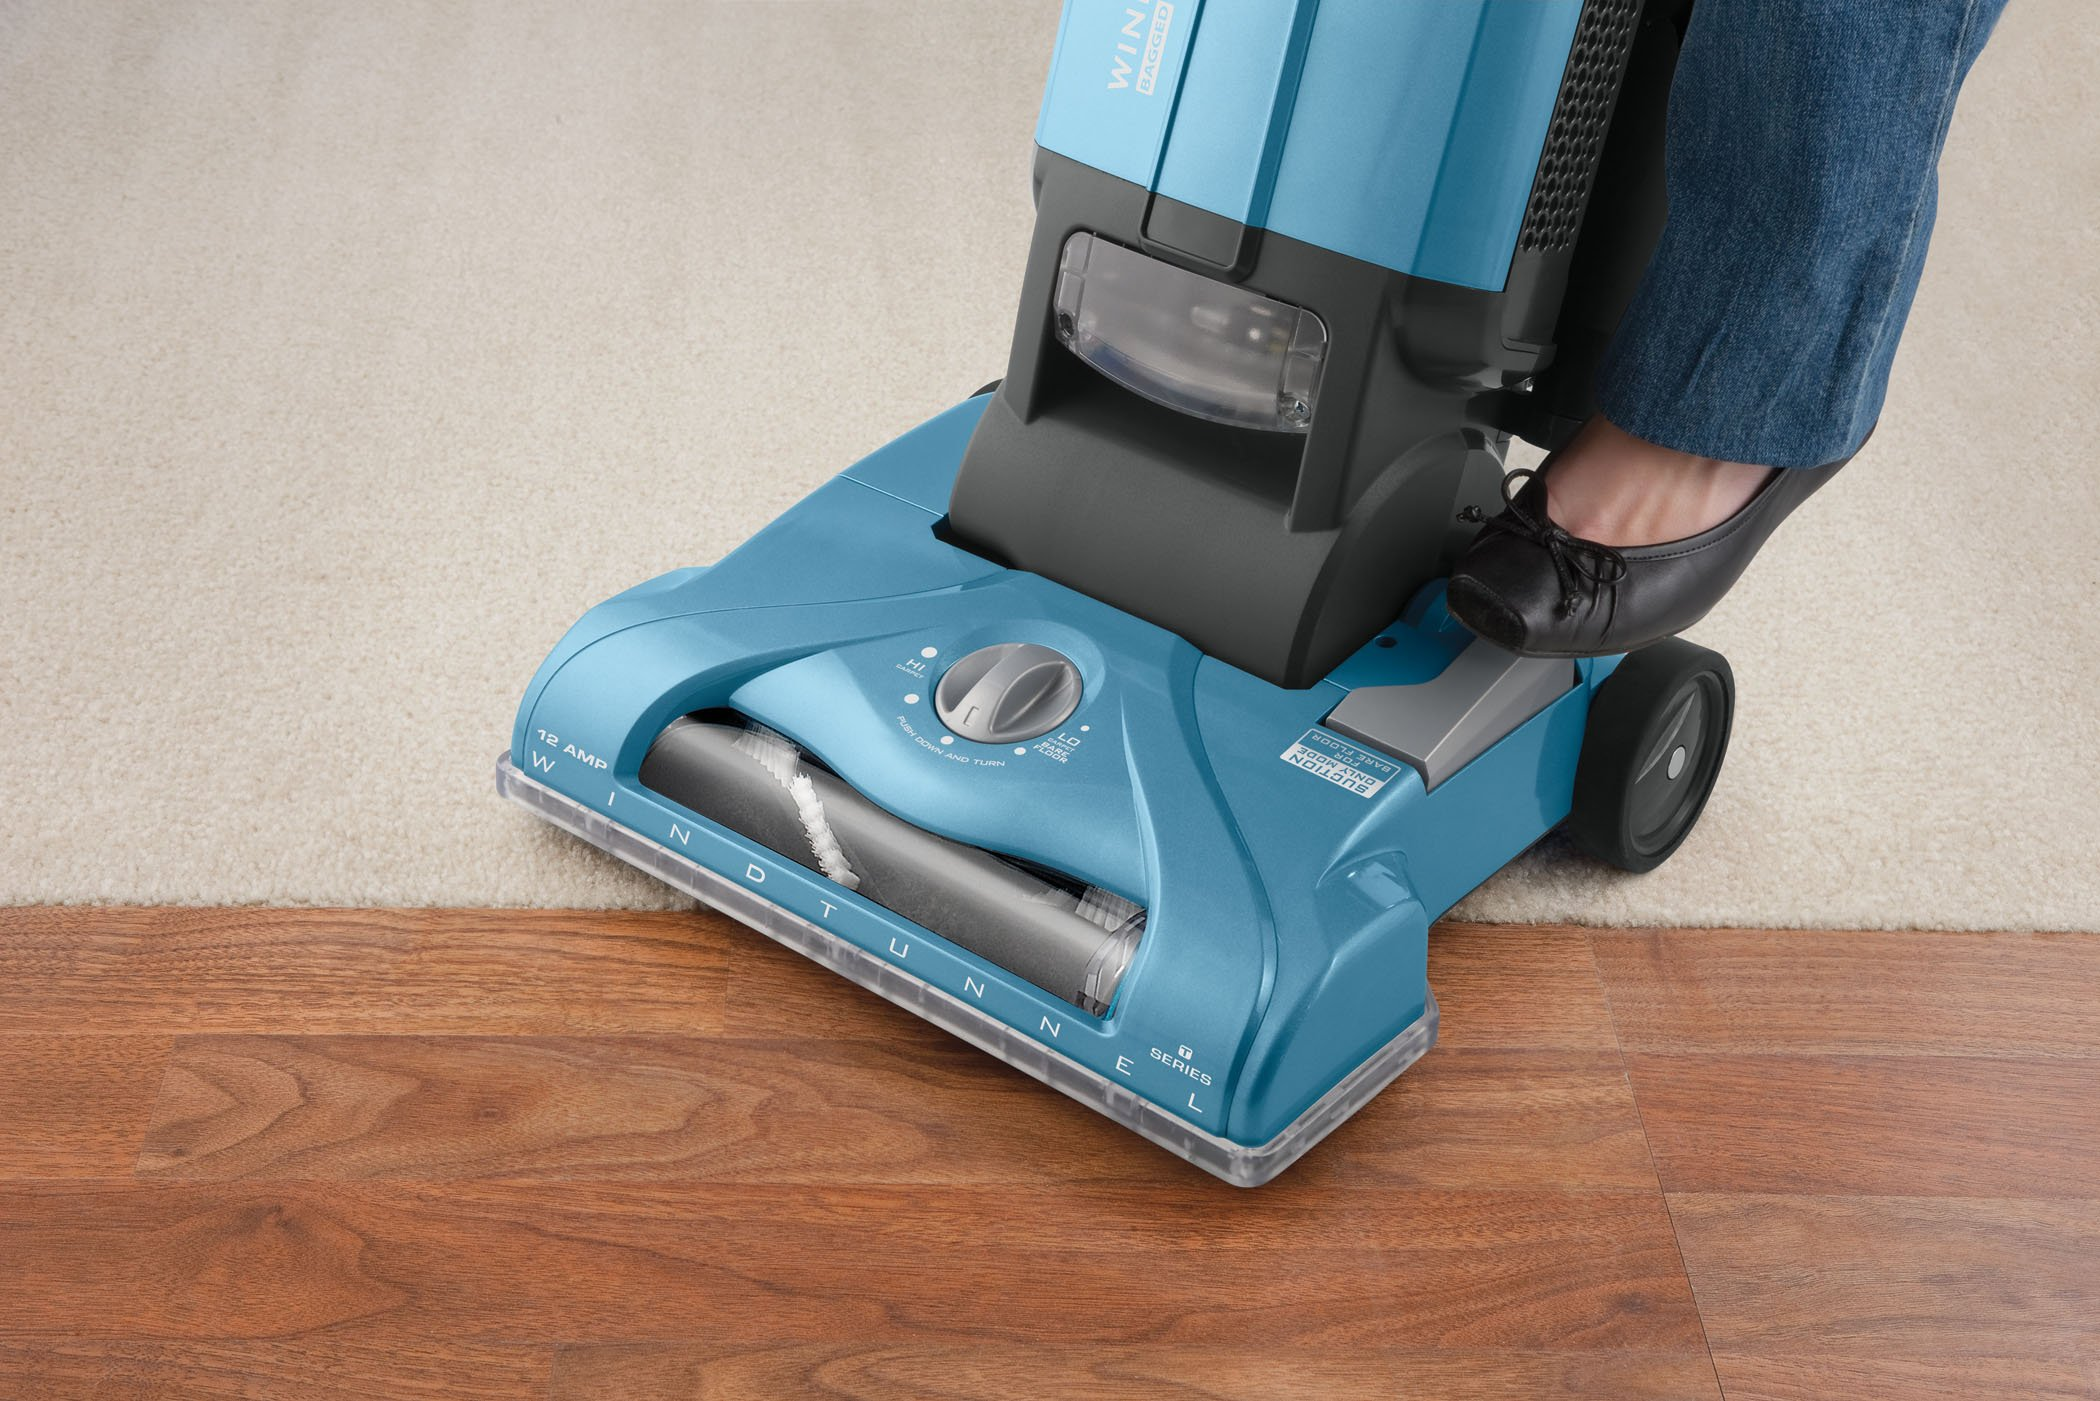 Hoover Vacuum Cleaner T-Series WindTunnel Corded Bagged Upright Vacuum UH30300 by Hoover (Image #5)